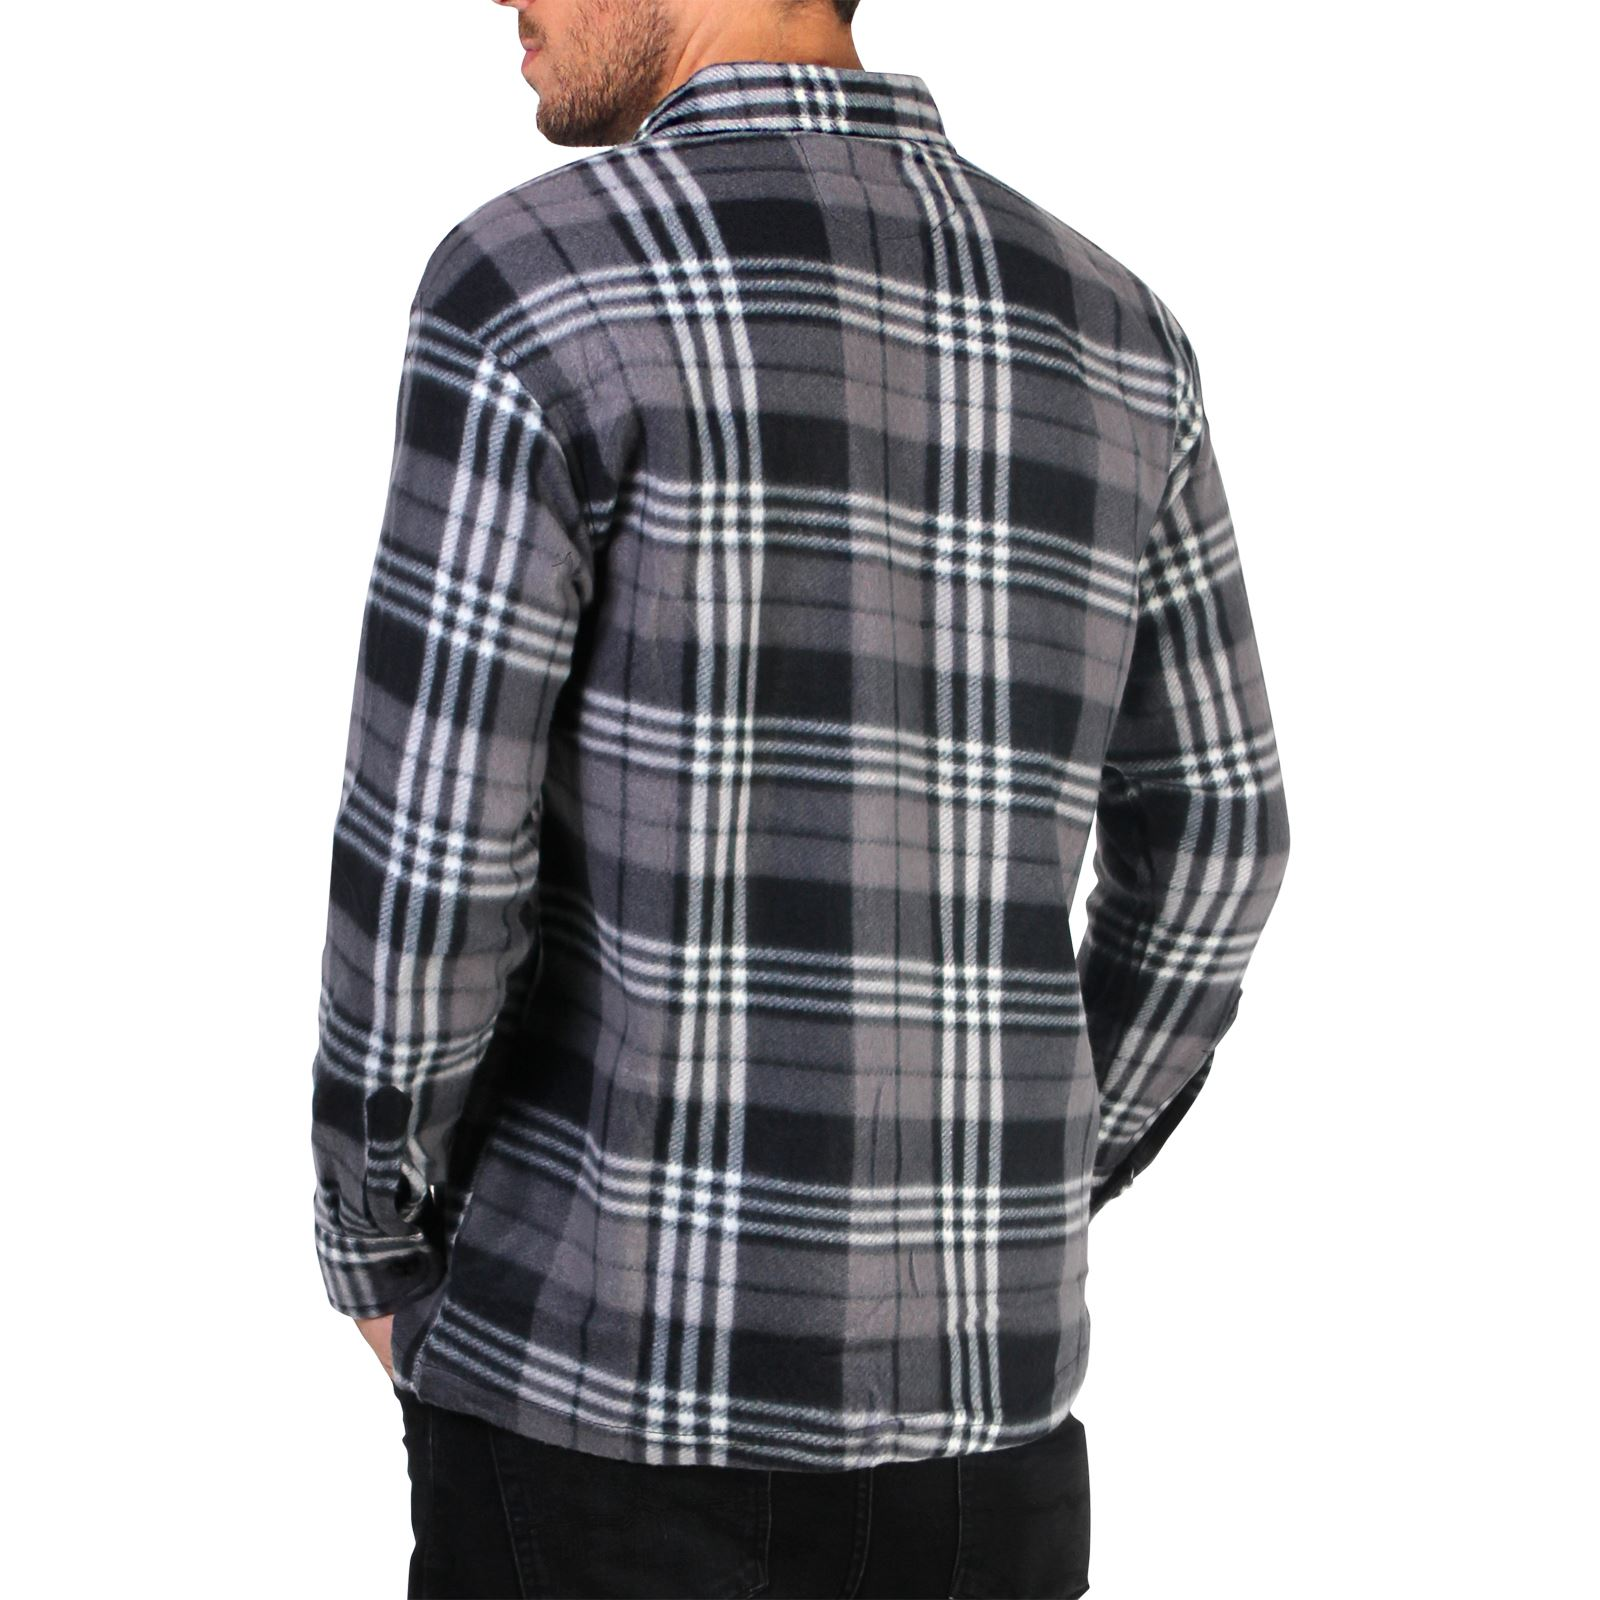 Mens check soft fleece thermal lumberjack warm winter for Mens insulated flannel shirts